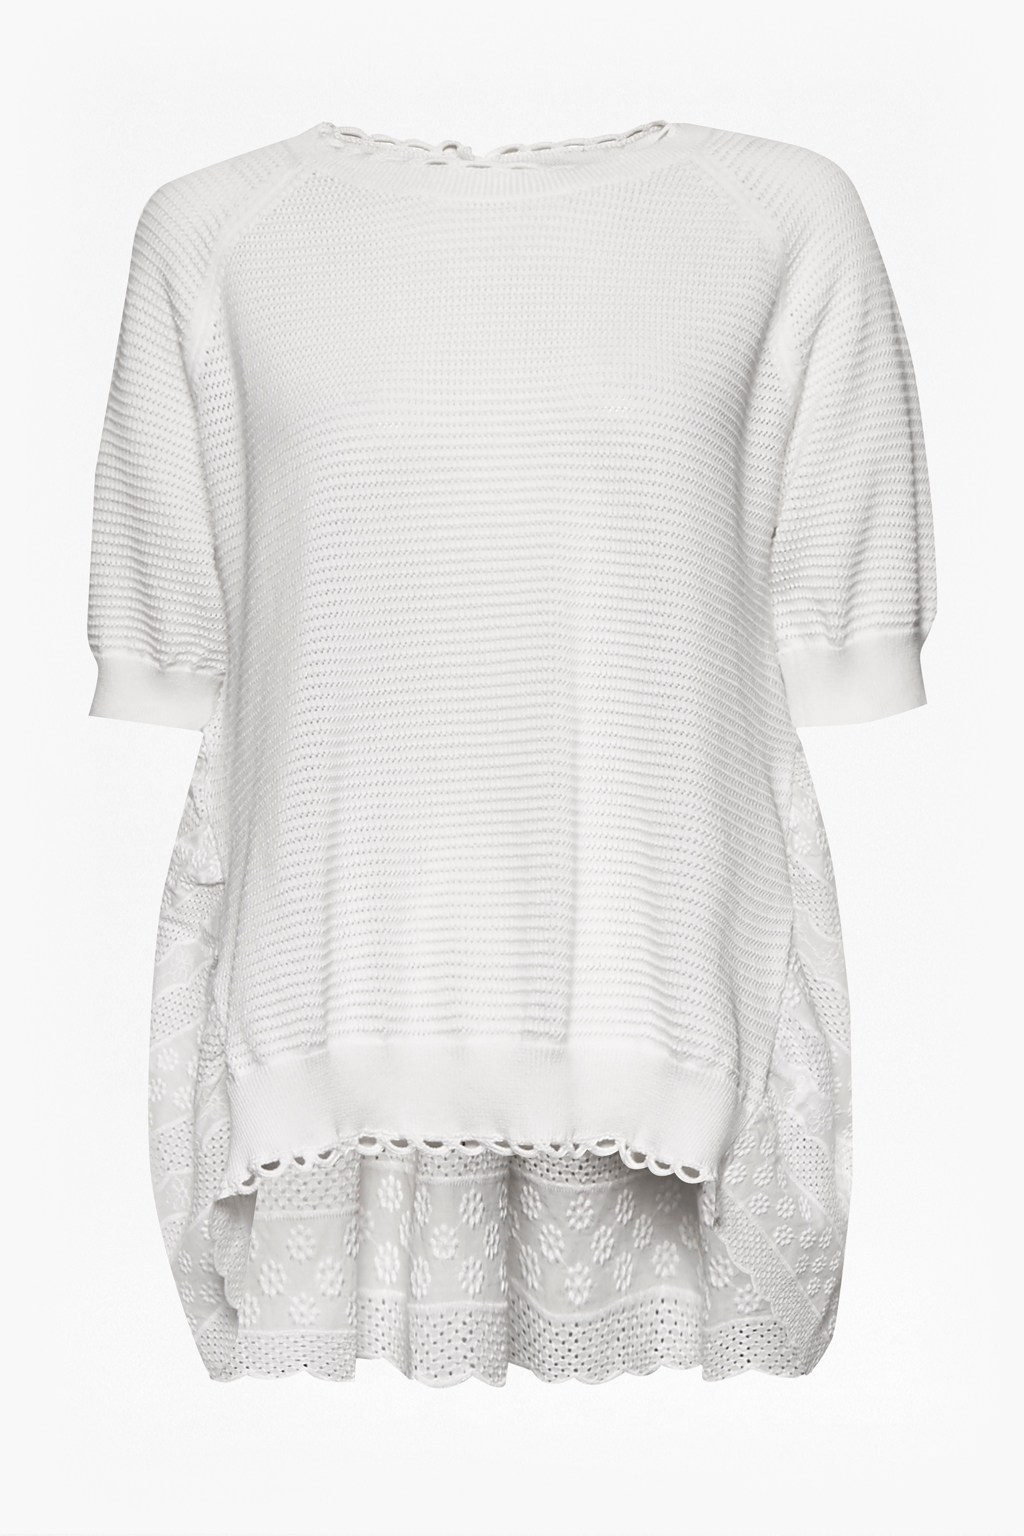 dc4f8ce16c0cf0 Celia Scallop Knitted Jumper. loading images.